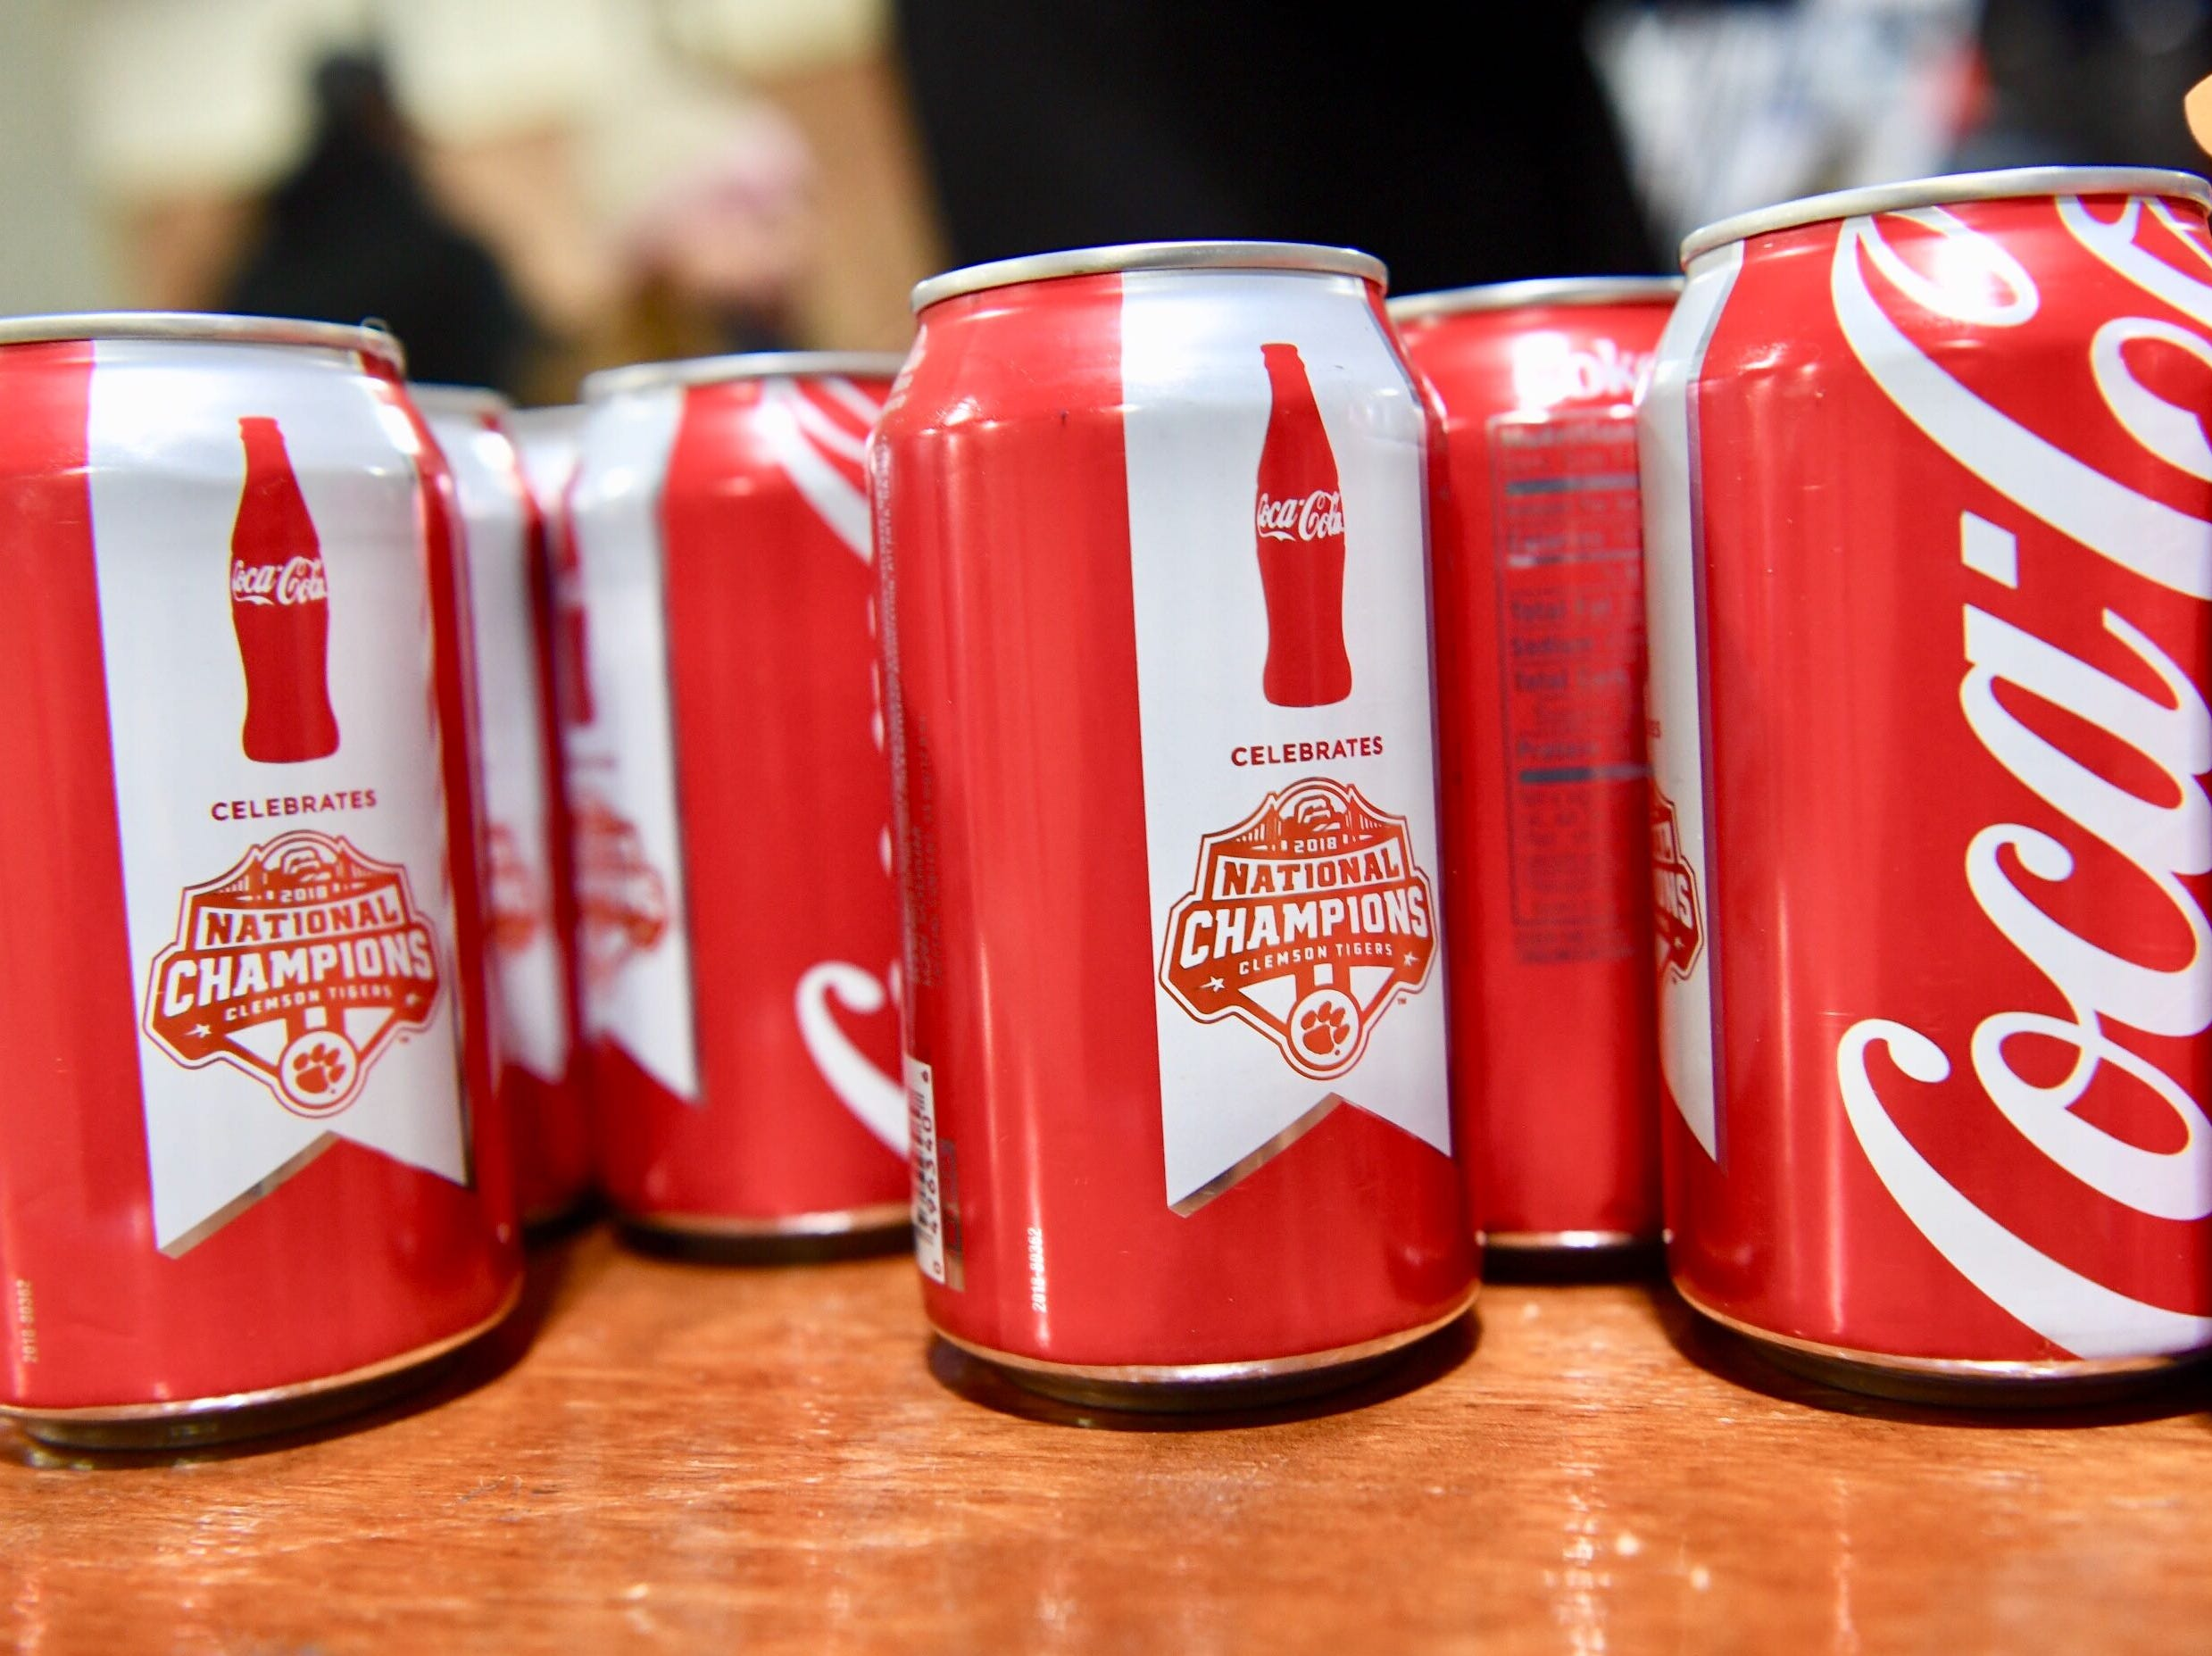 Clemson National Championship Coke cans given to first 2,400 at Memorial Stadium.